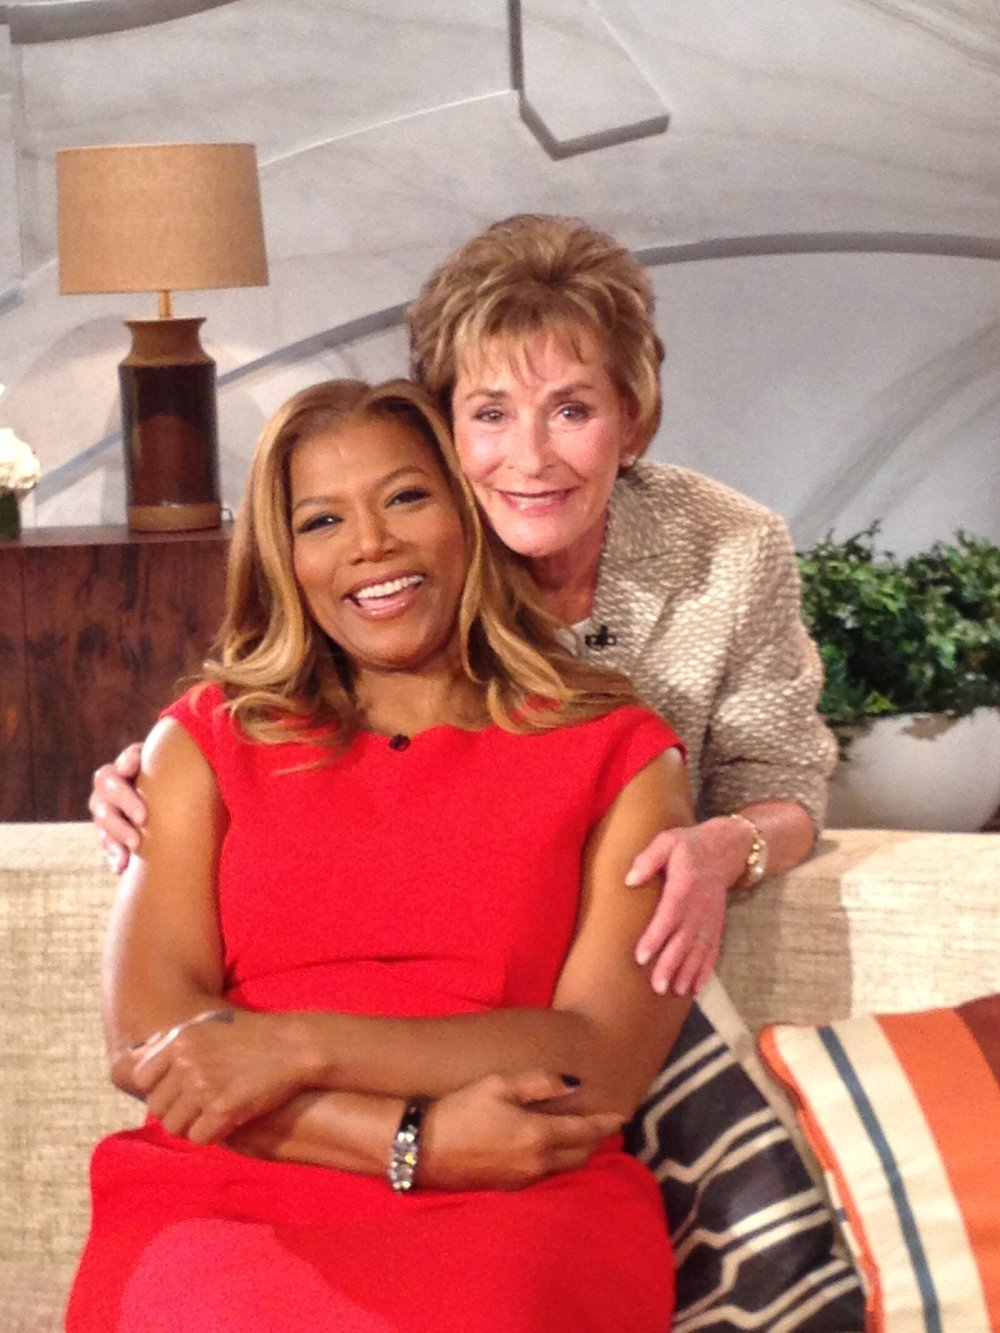 Judge Judy with Queen Latifah